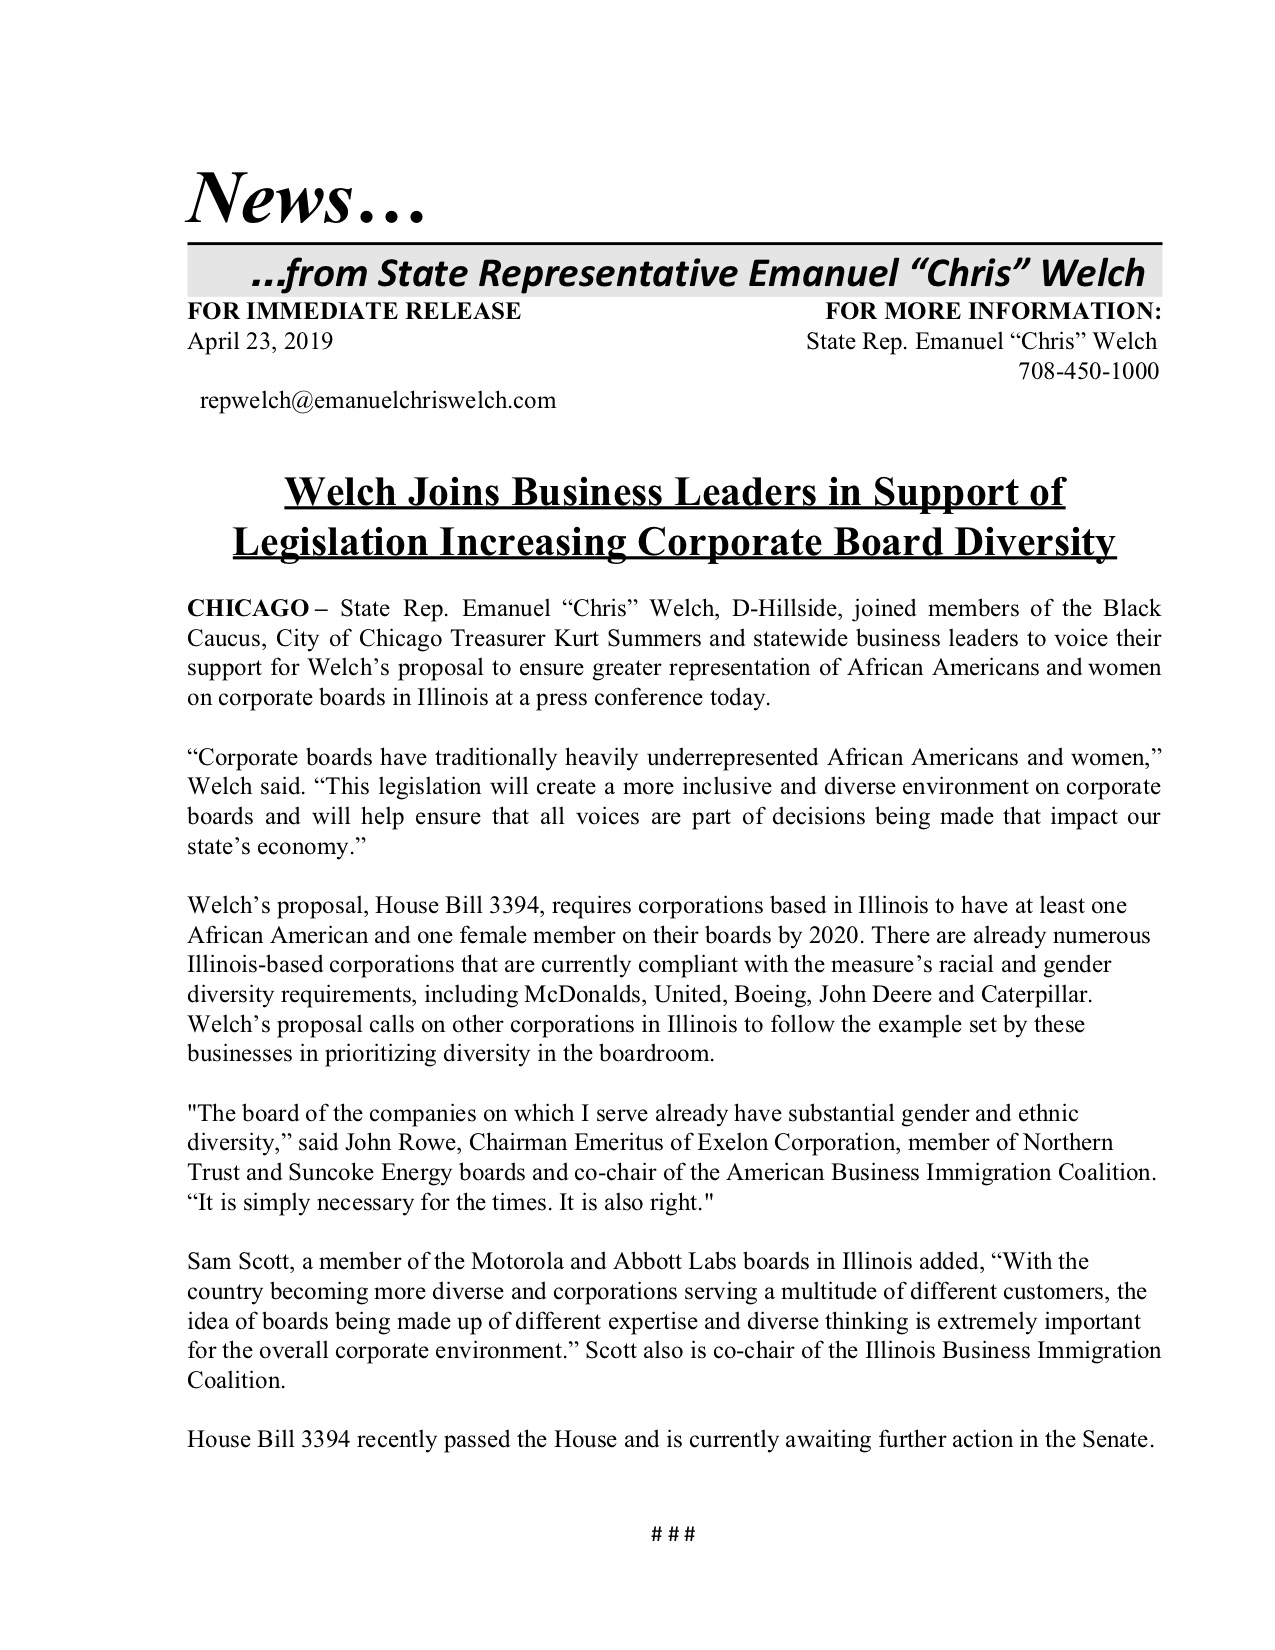 Welch Joins Business Leaders in Support of Legislation Increasing Corporate Board Diversity  (April 23, 2019)